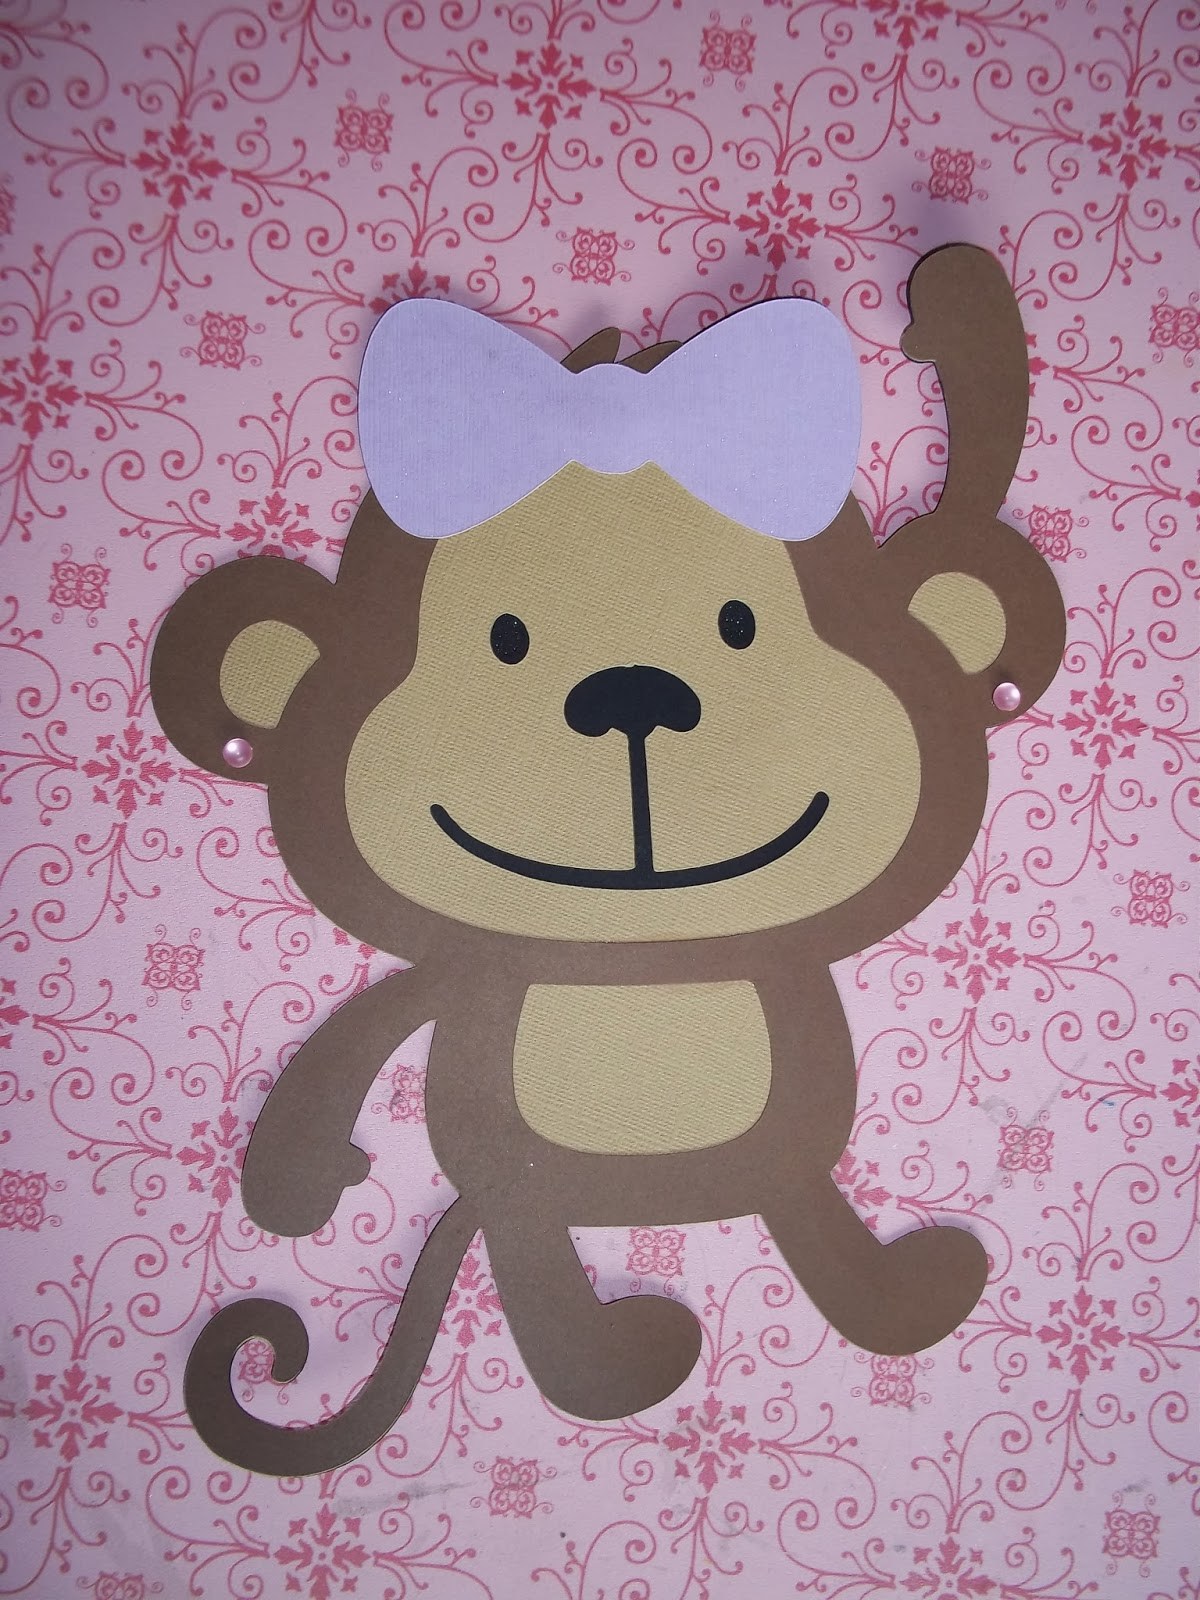 Crafty creations by niki baby shower monkey holding balloons decoration - Monkey balloons for baby shower ...